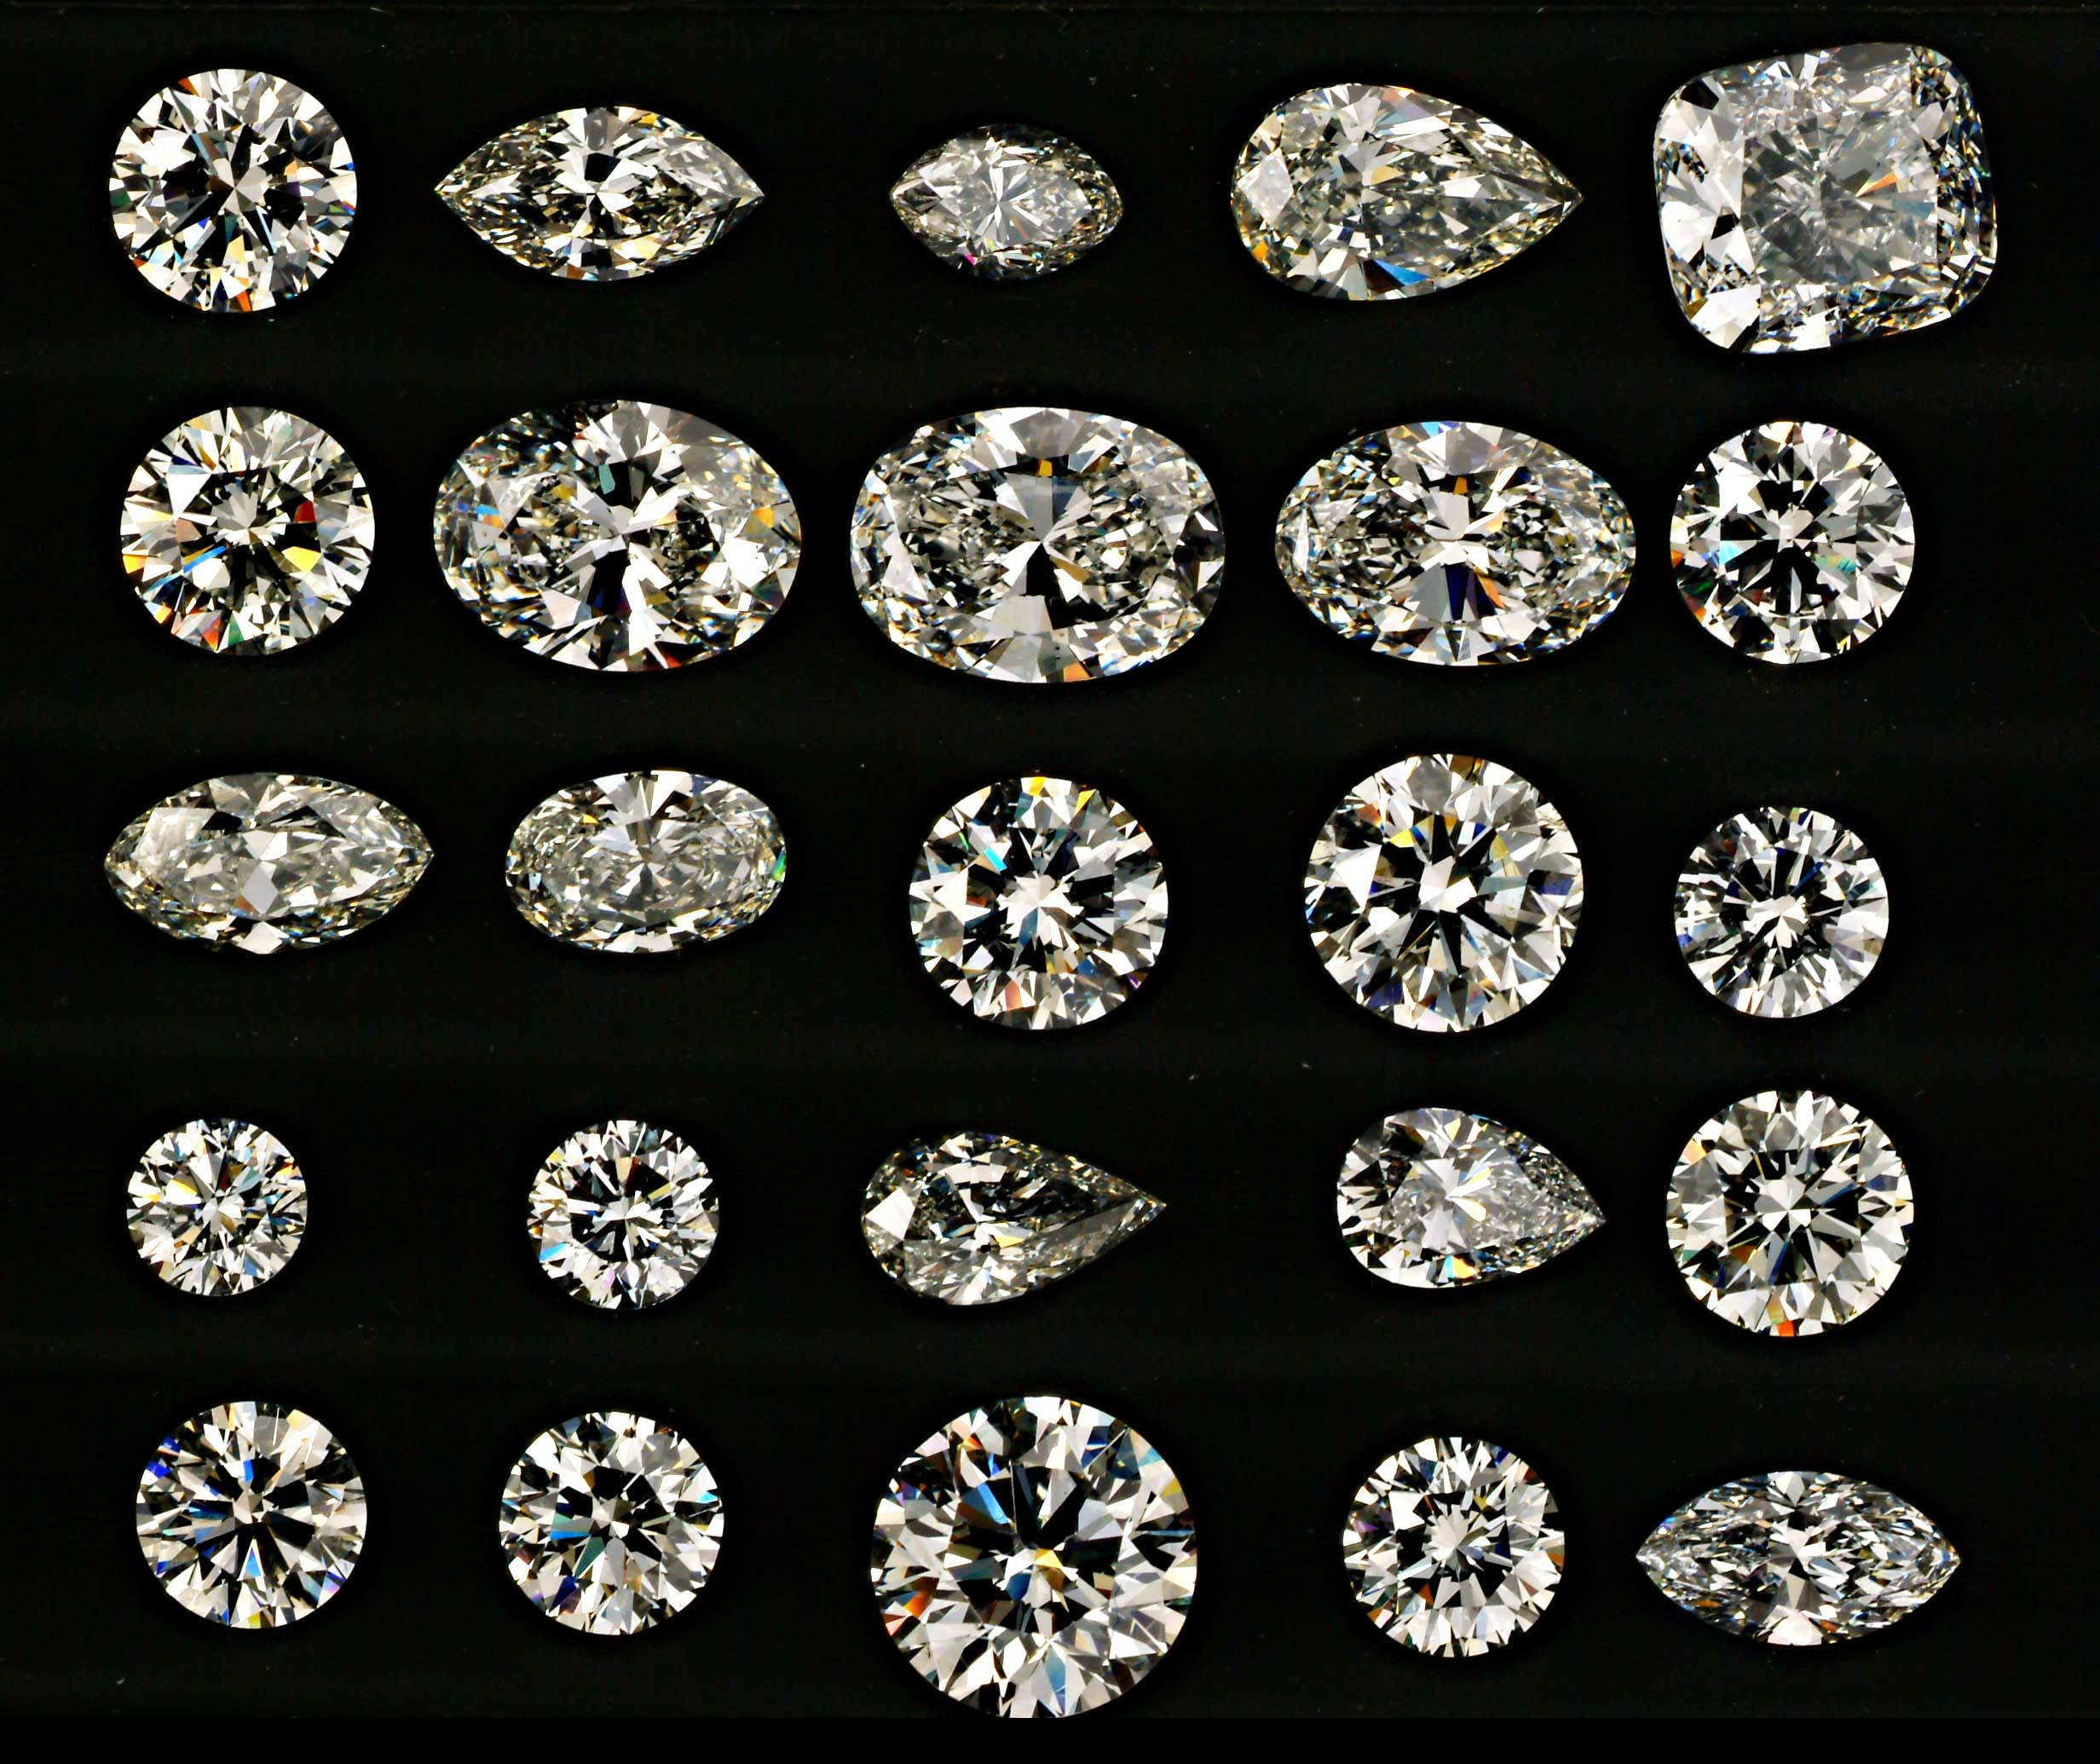 grading upcoming for sized diamond larger diamonds service events feb event